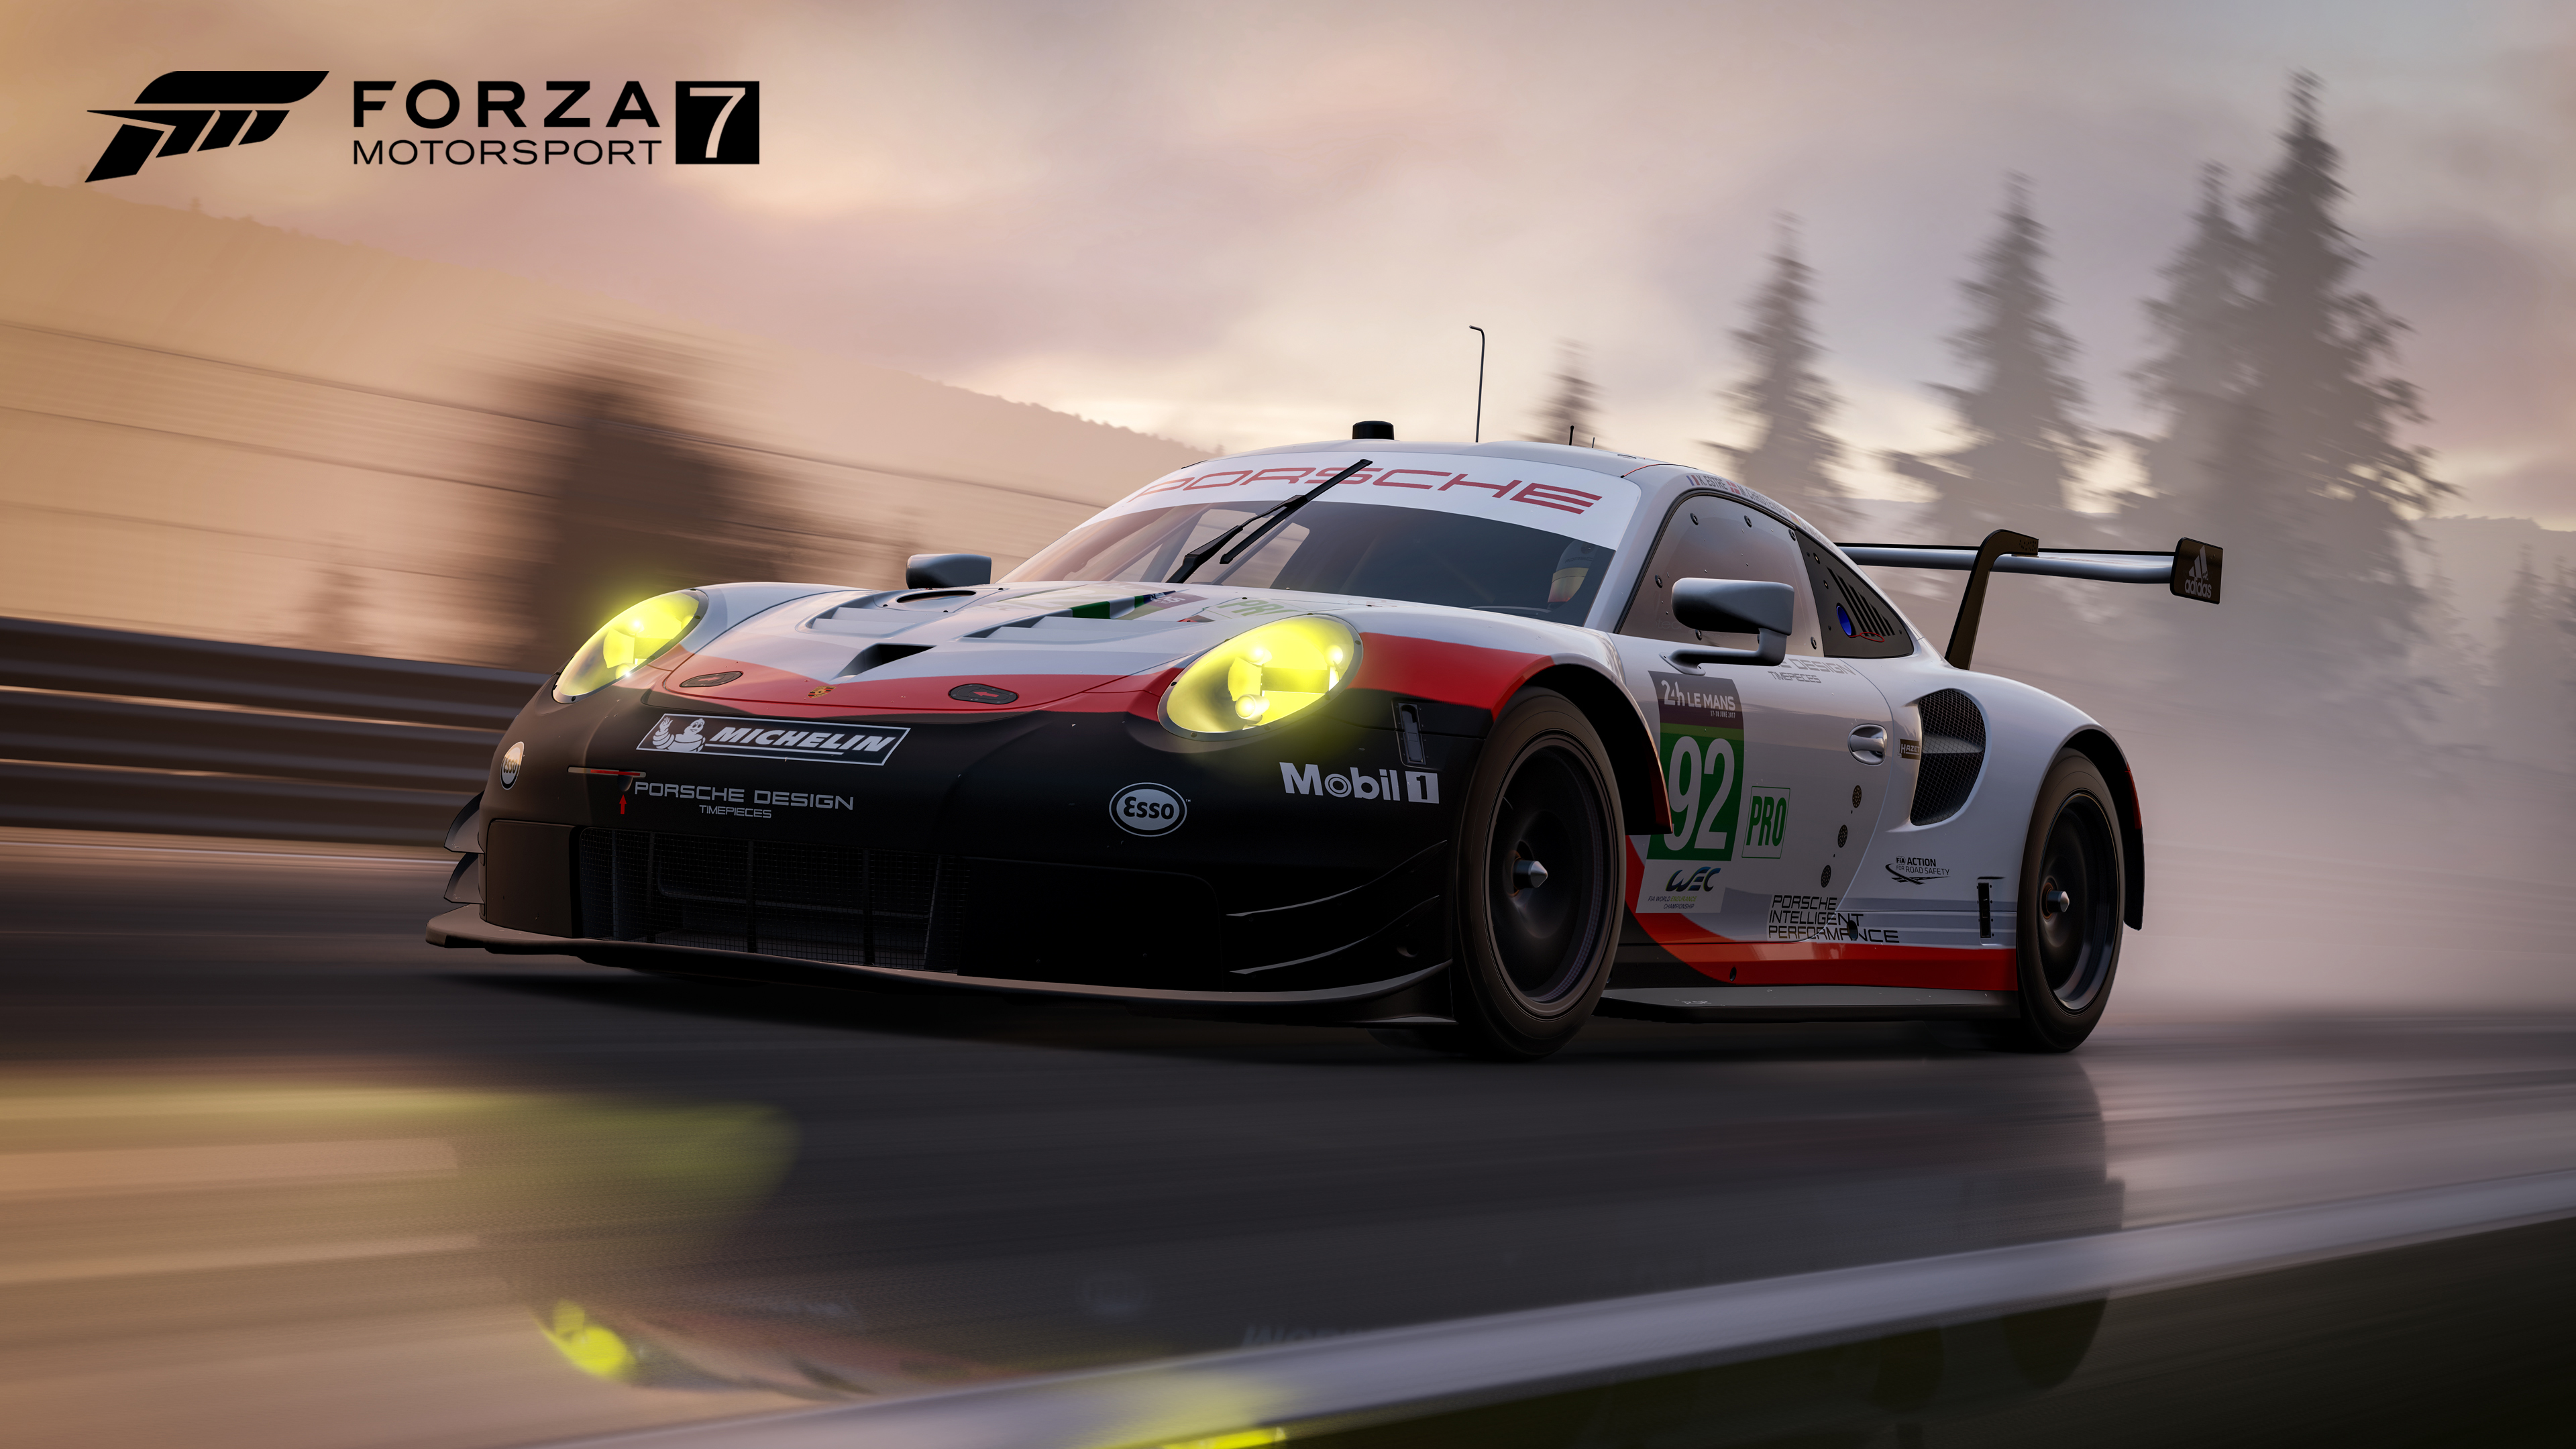 porsche 911 forza motorsport 7 4k hd games 4k wallpapers images backgrounds photos and pictures. Black Bedroom Furniture Sets. Home Design Ideas